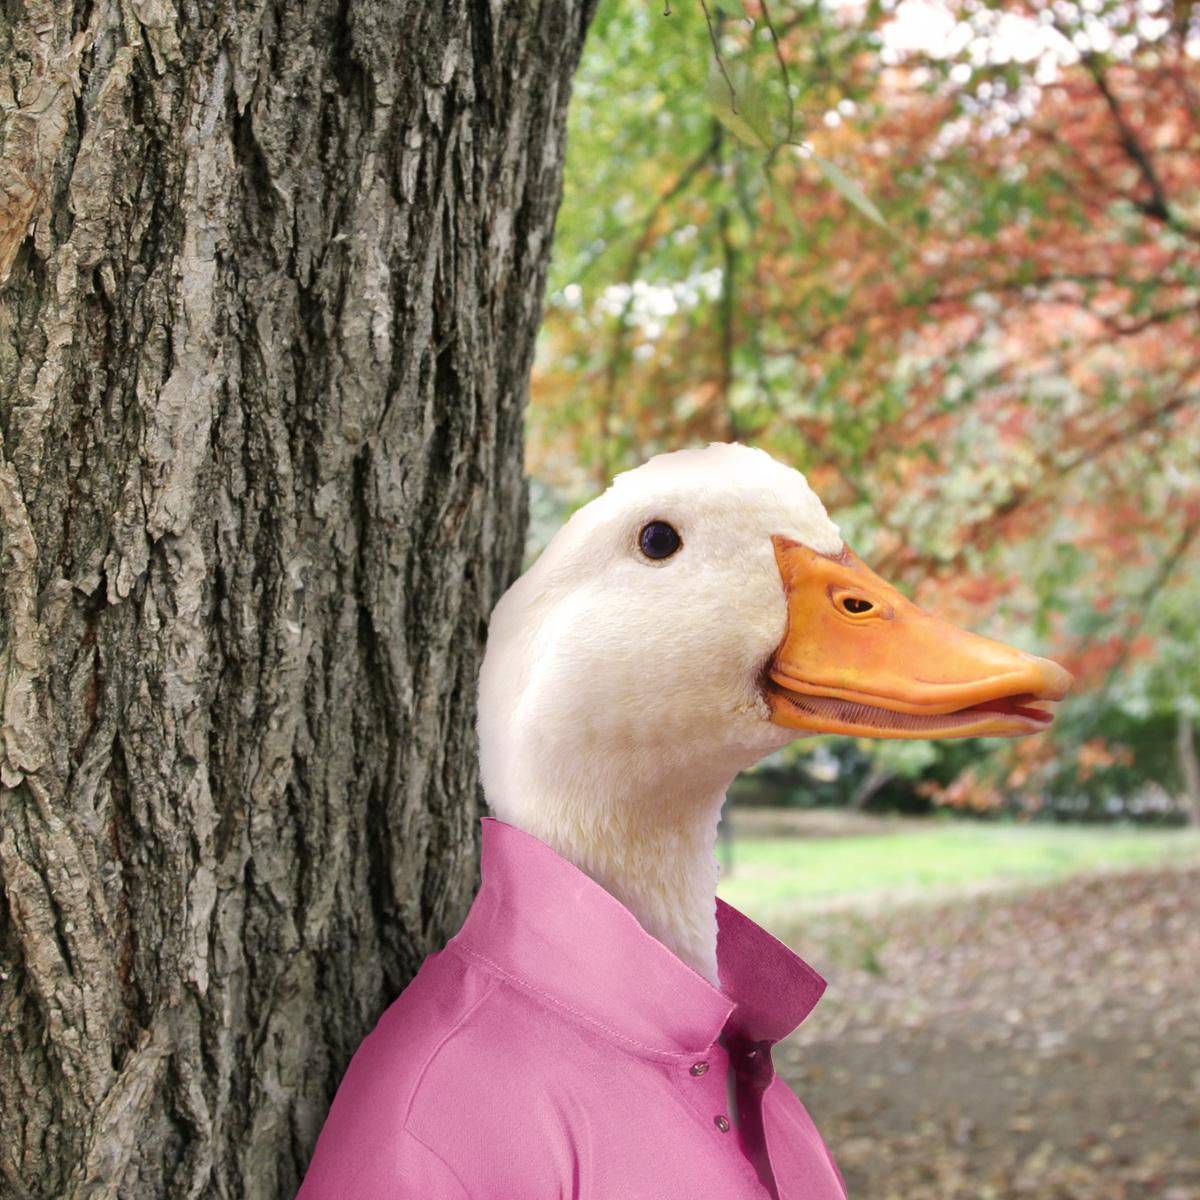 On Wednesdays I wear pink. J/K, I accidentally put a red shirt in with my whites last night. #LaundryDay #DuckLife http://t.co/uLMoR0sCAx